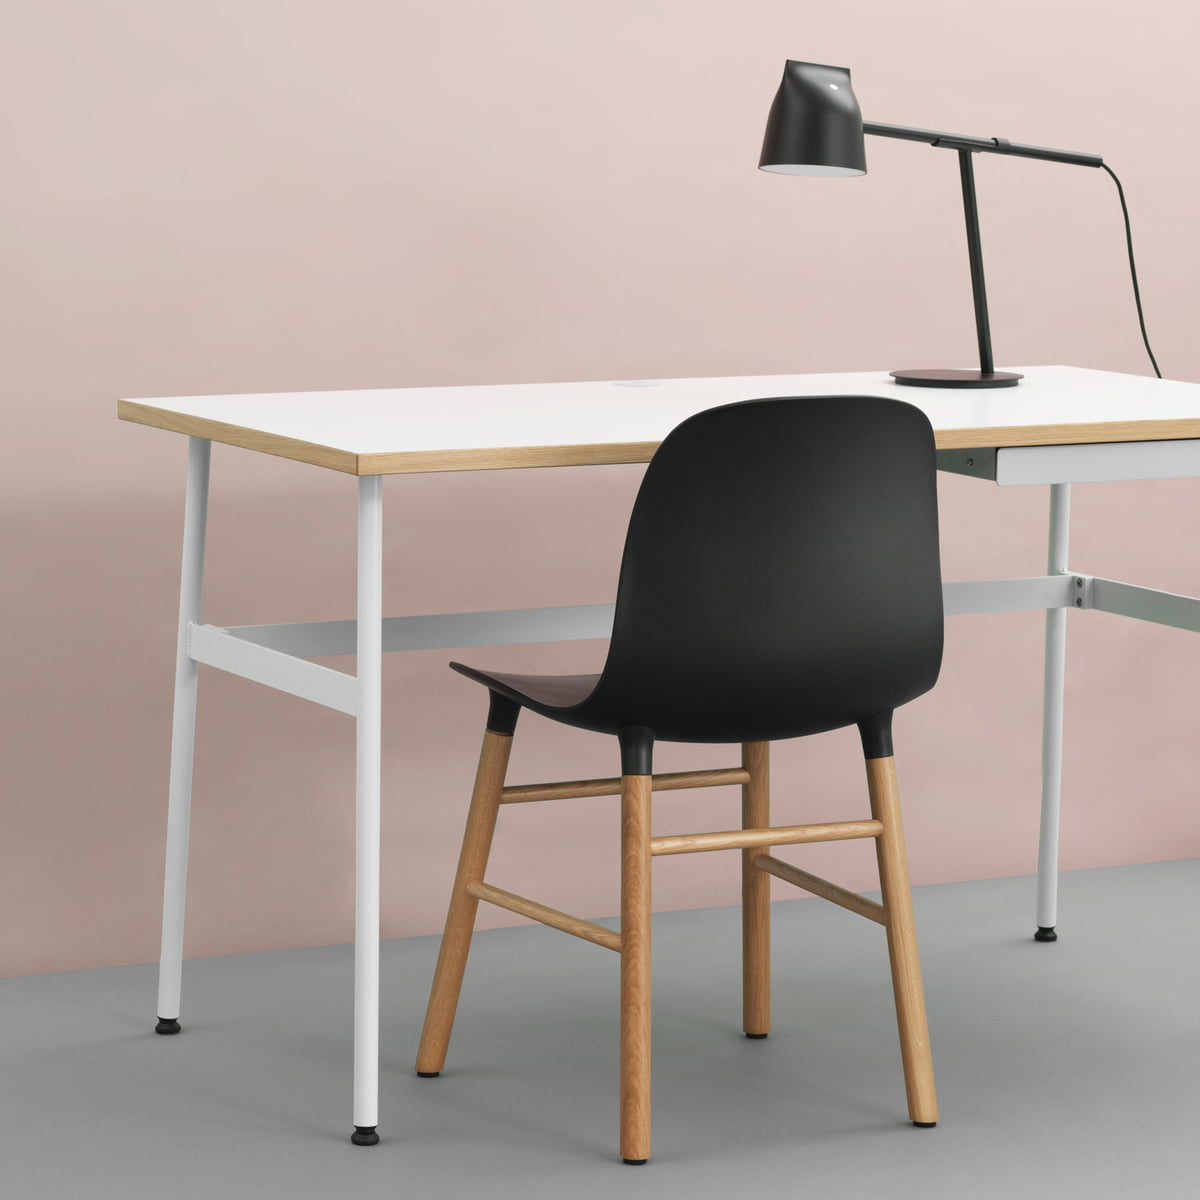 Interesting Journal Desk Momento Und Form Chair Journal Desk Von Normann  Copenhagen With Normann Copenhagen Tisch